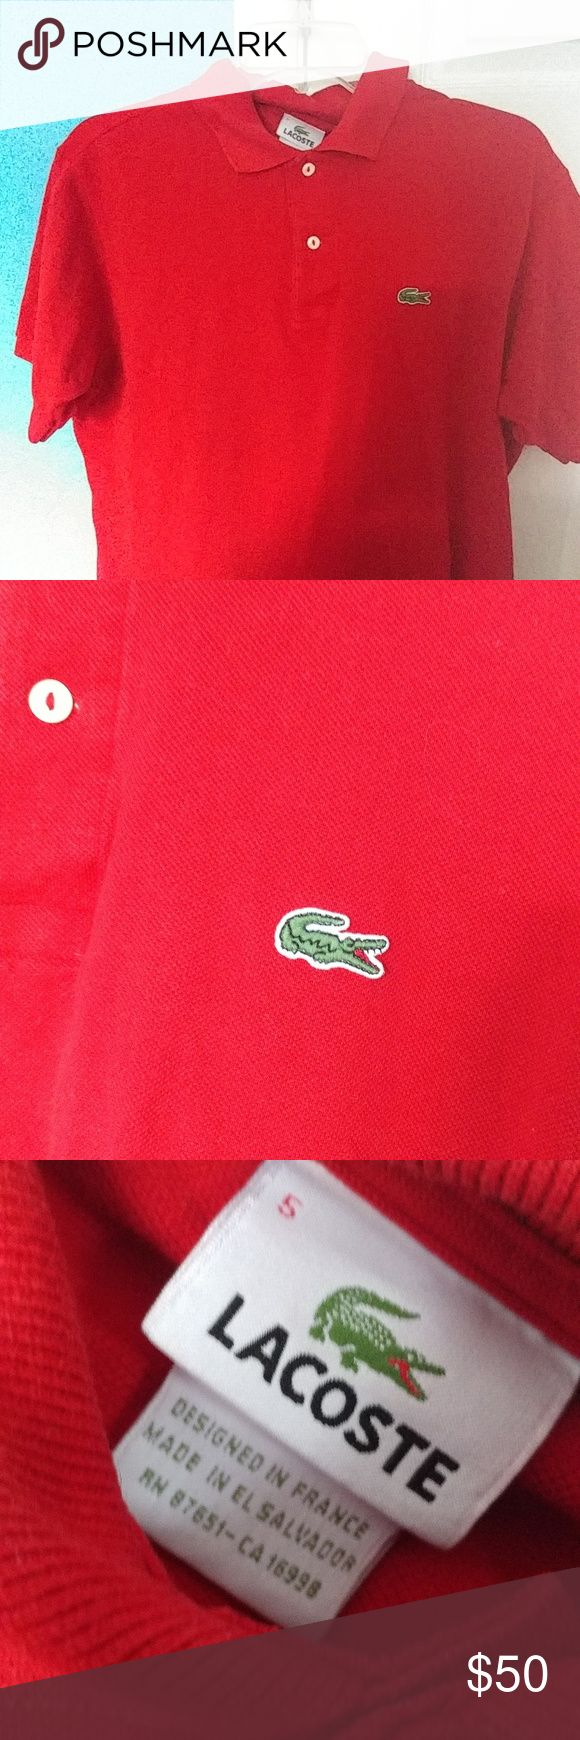 Men's Medium Red Lacoste Polo Men's medium Lacoste polo, very limited wear. No wear and tear in the fabric, still in great condition. Lacoste Shirts Polos